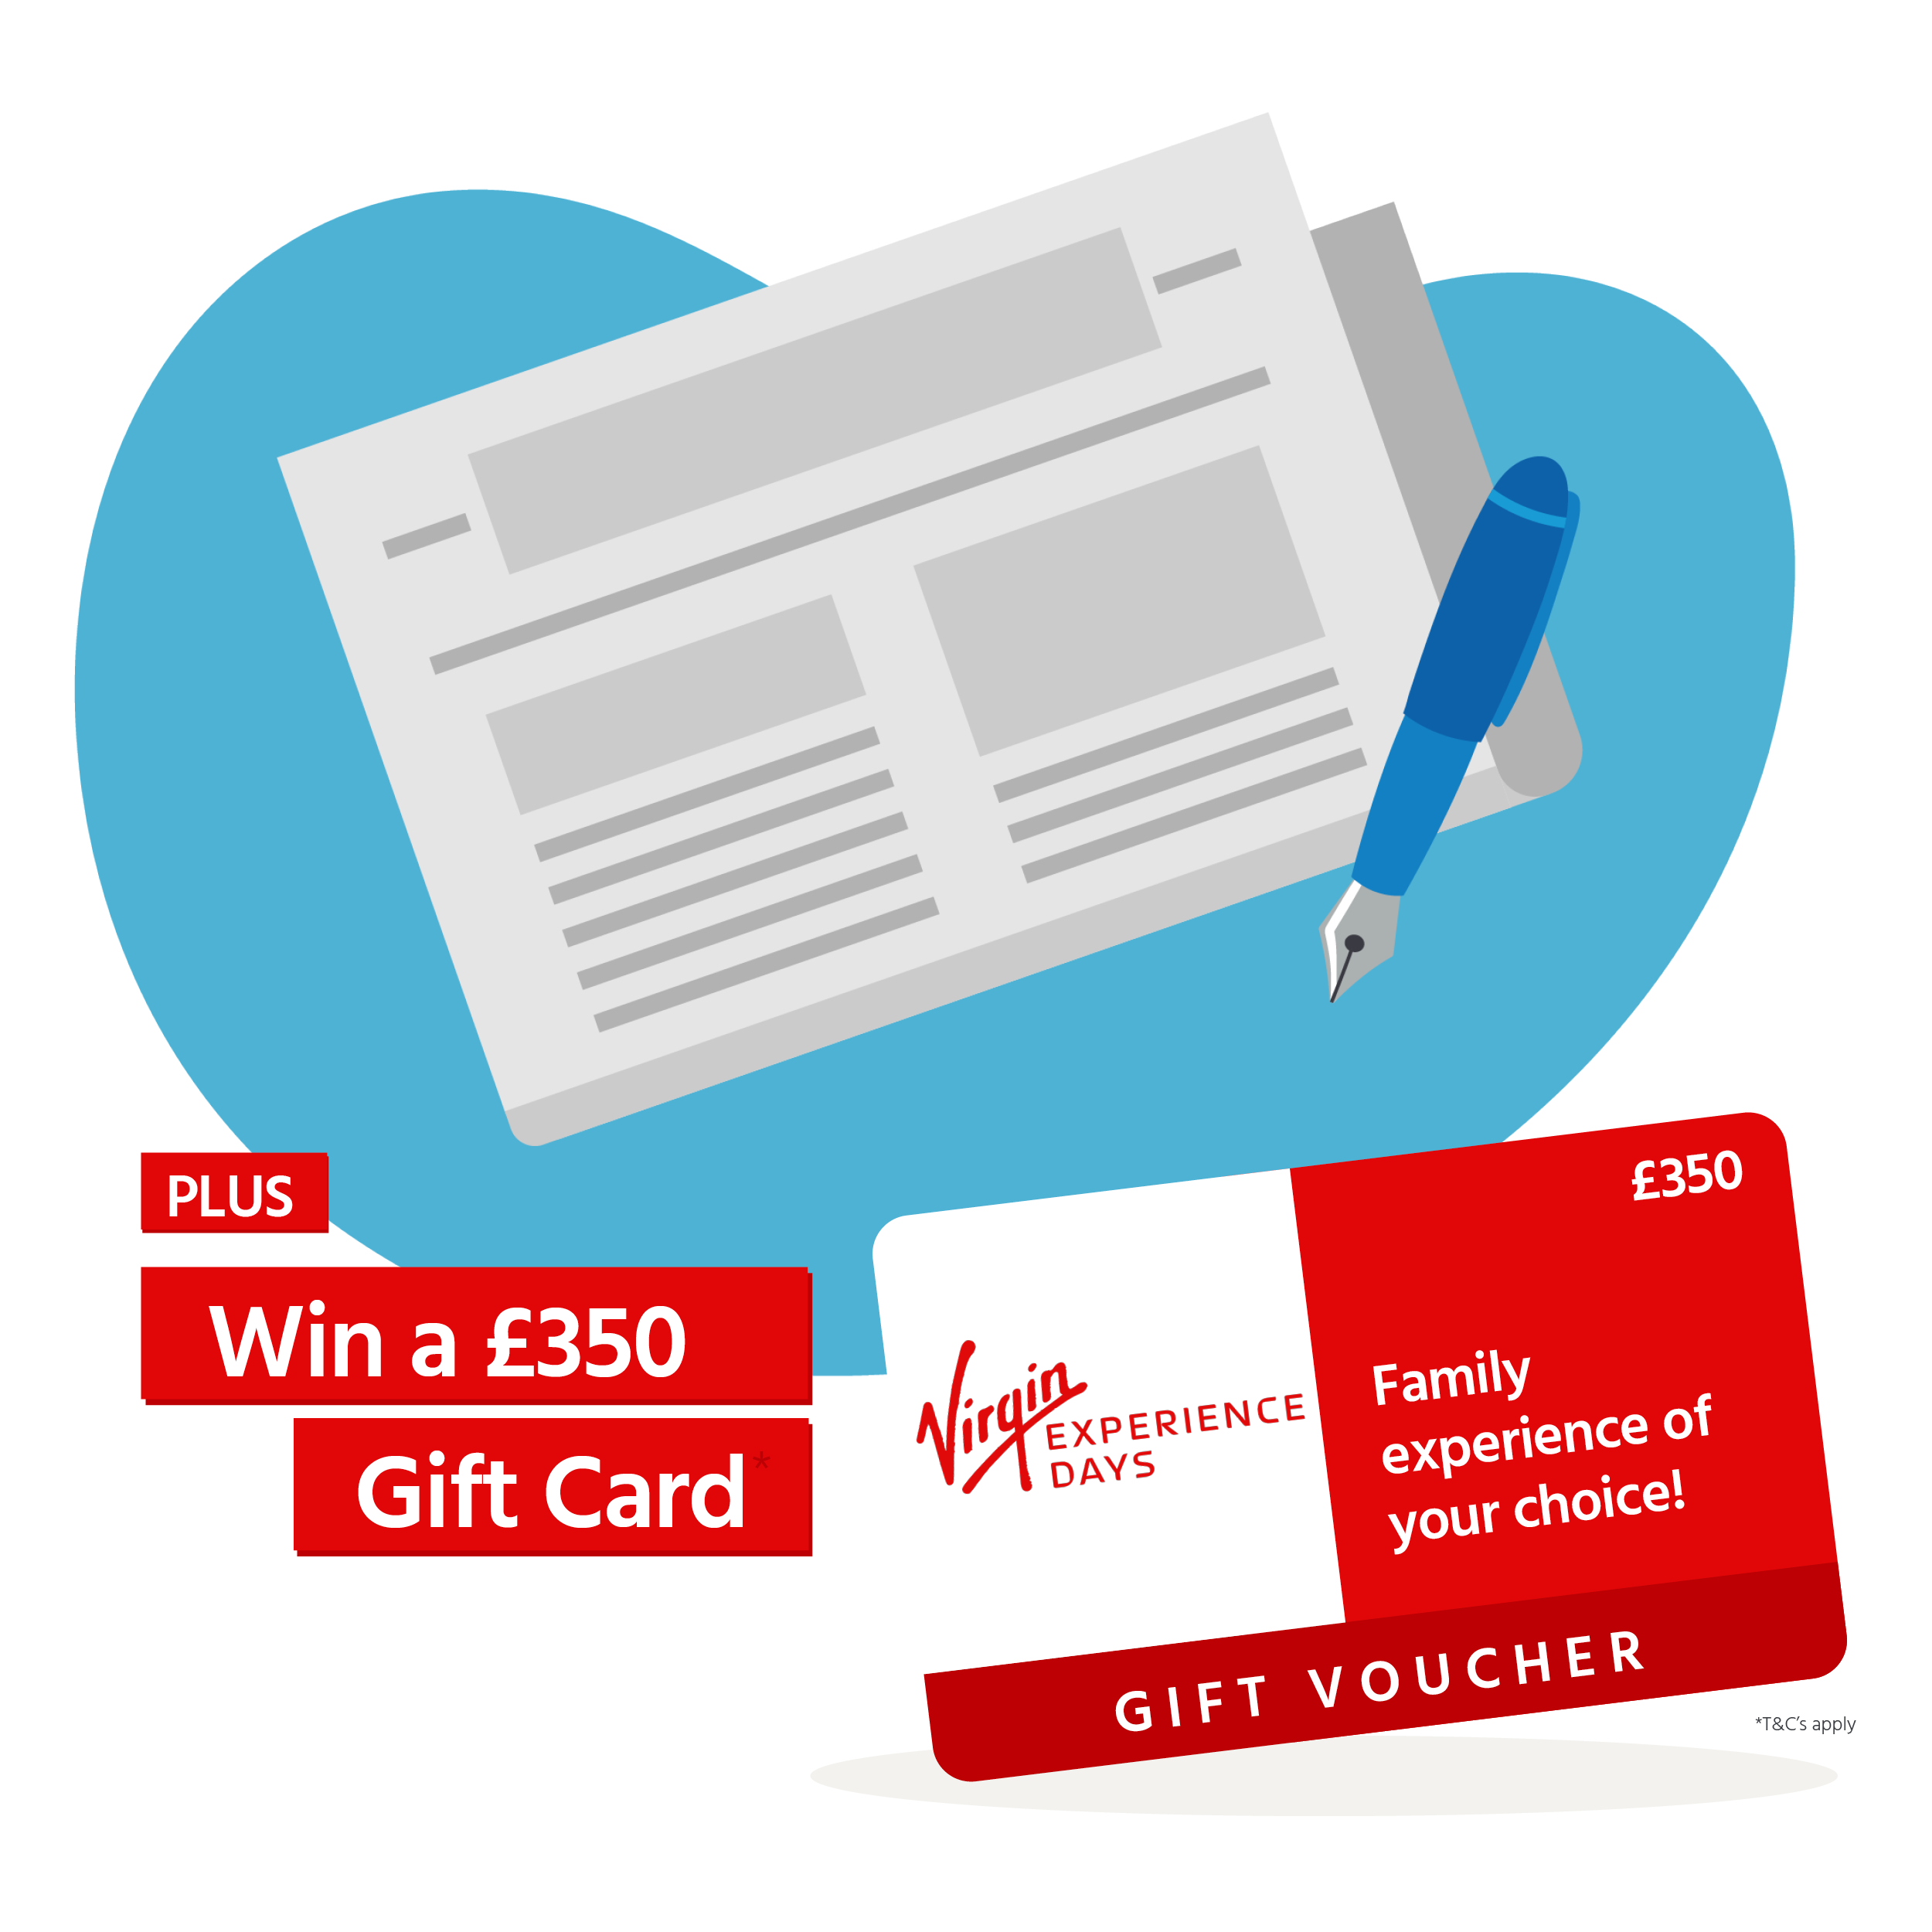 Discover More Competition Win A Gift Card